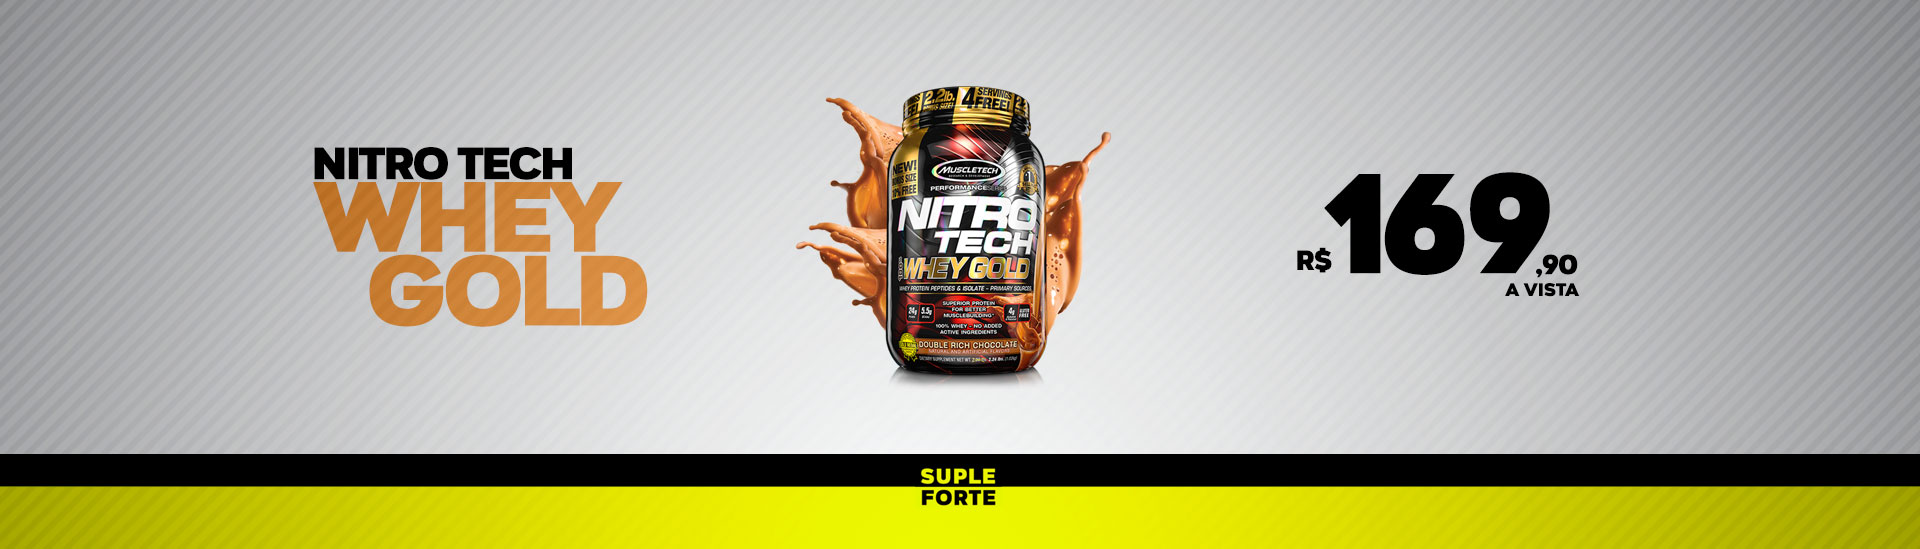 Oferta Nitro Tech Whey Gold!!!